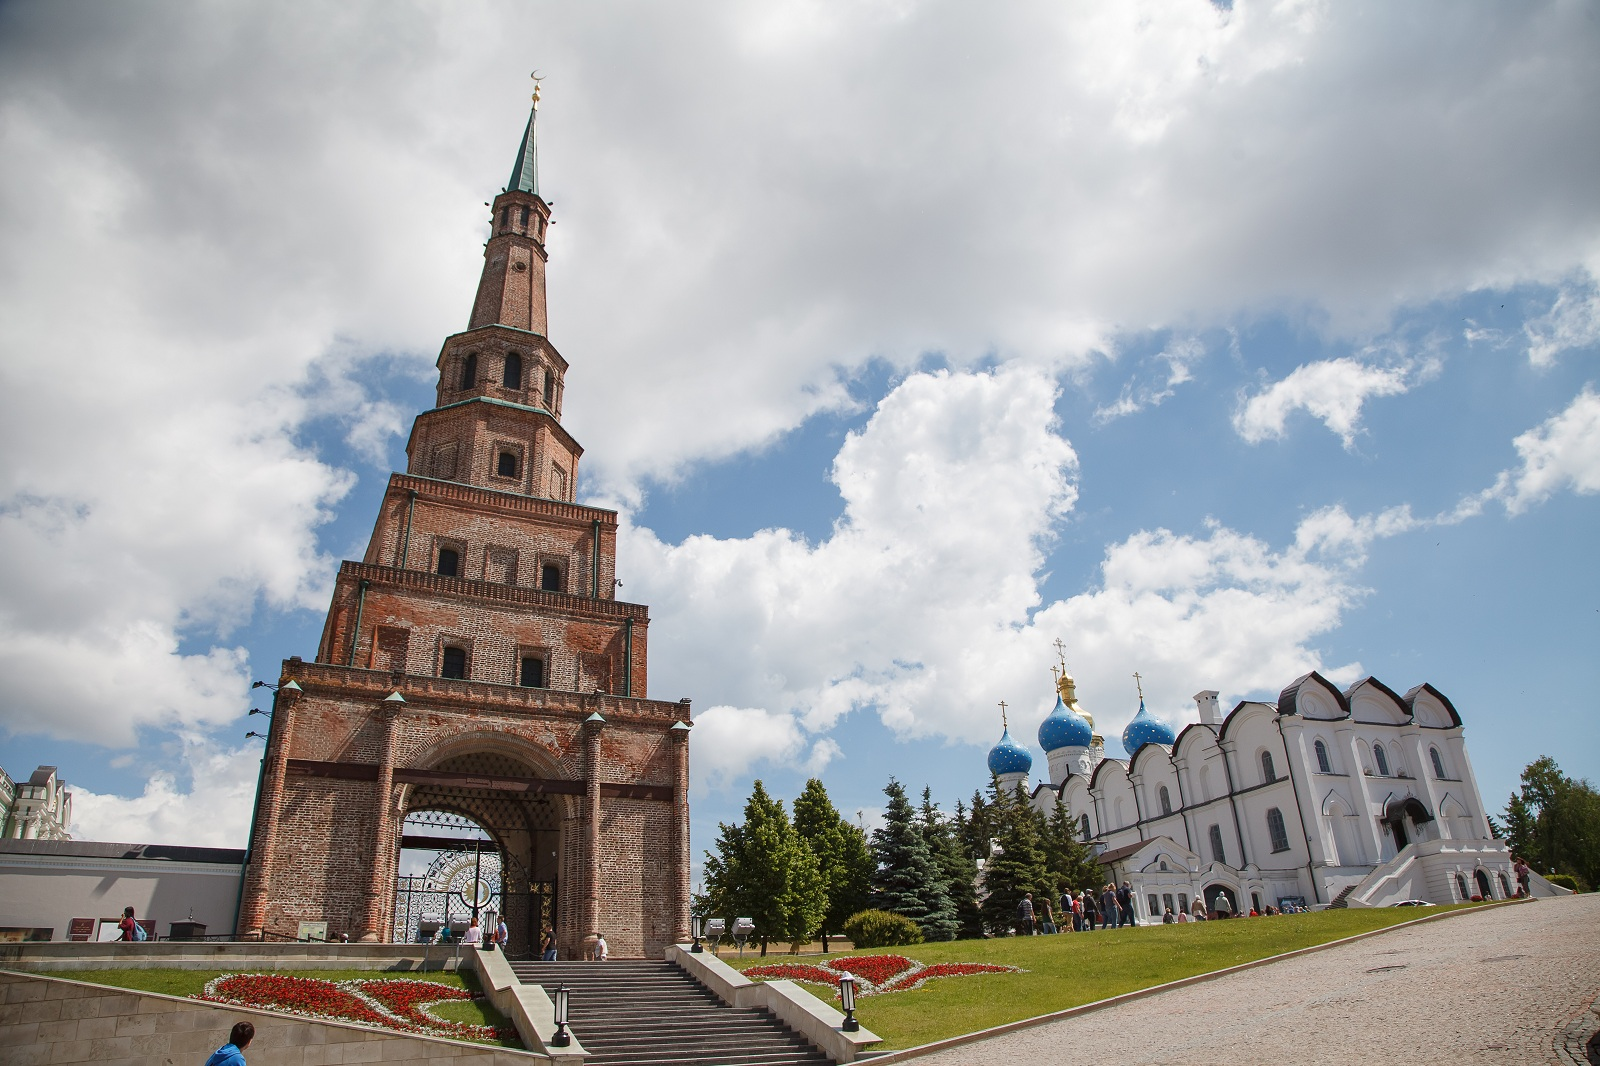 Söyembikä_Tower_The_Watchtower_is_the_architectural_symbol_of_Kazan_One_of_the_so-called_leaning_towers_Its_height_is_58_metres.jpg